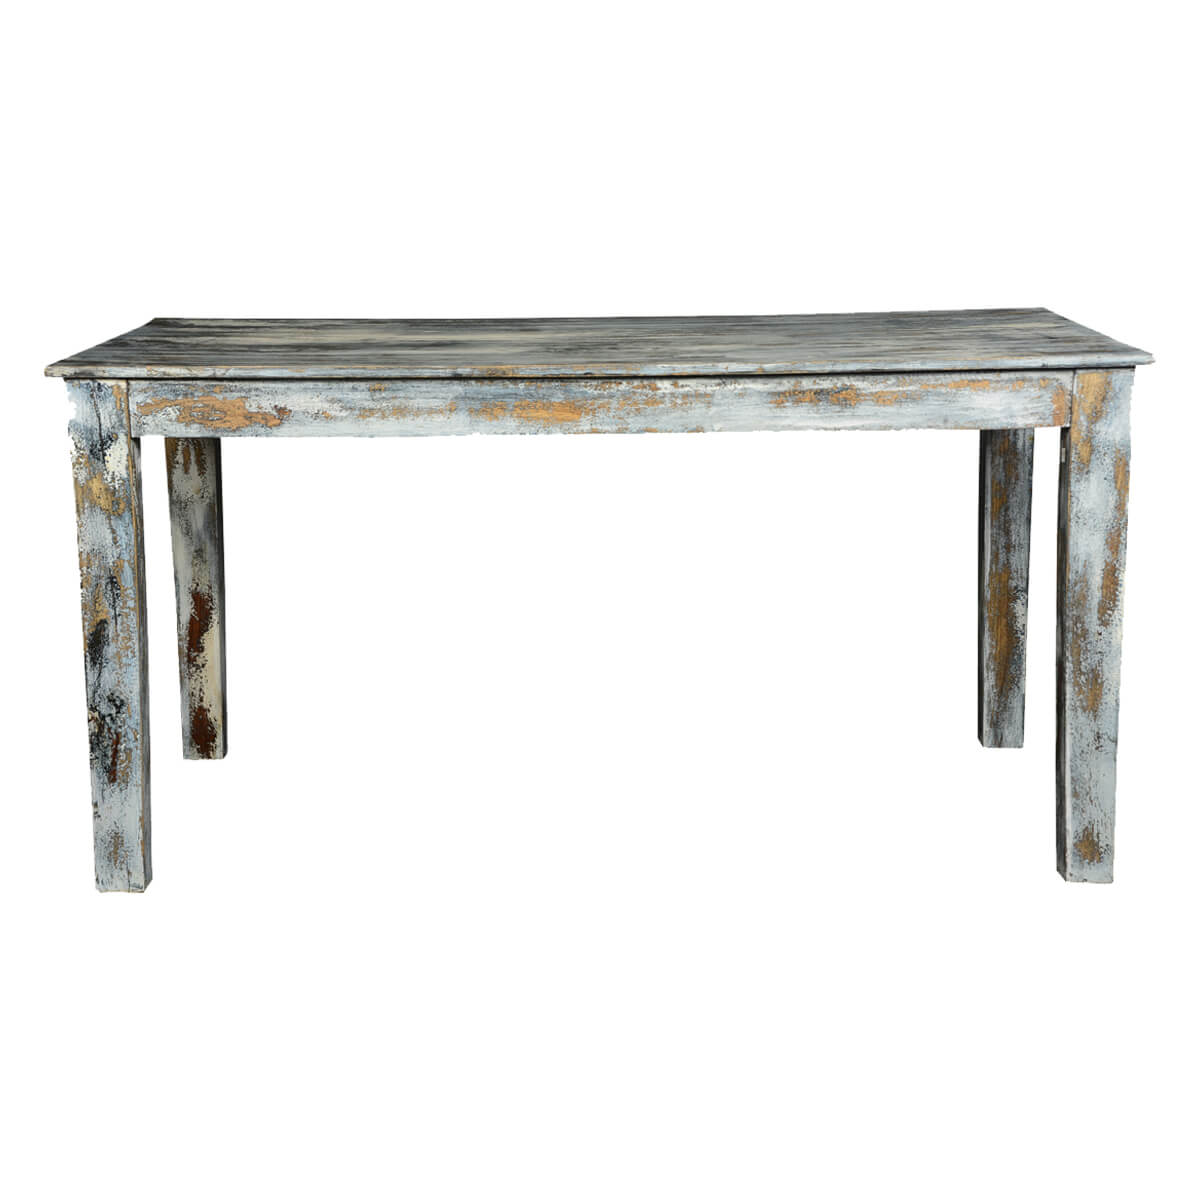 Distressed wood dining table distressed stunning for Distressed white dining table